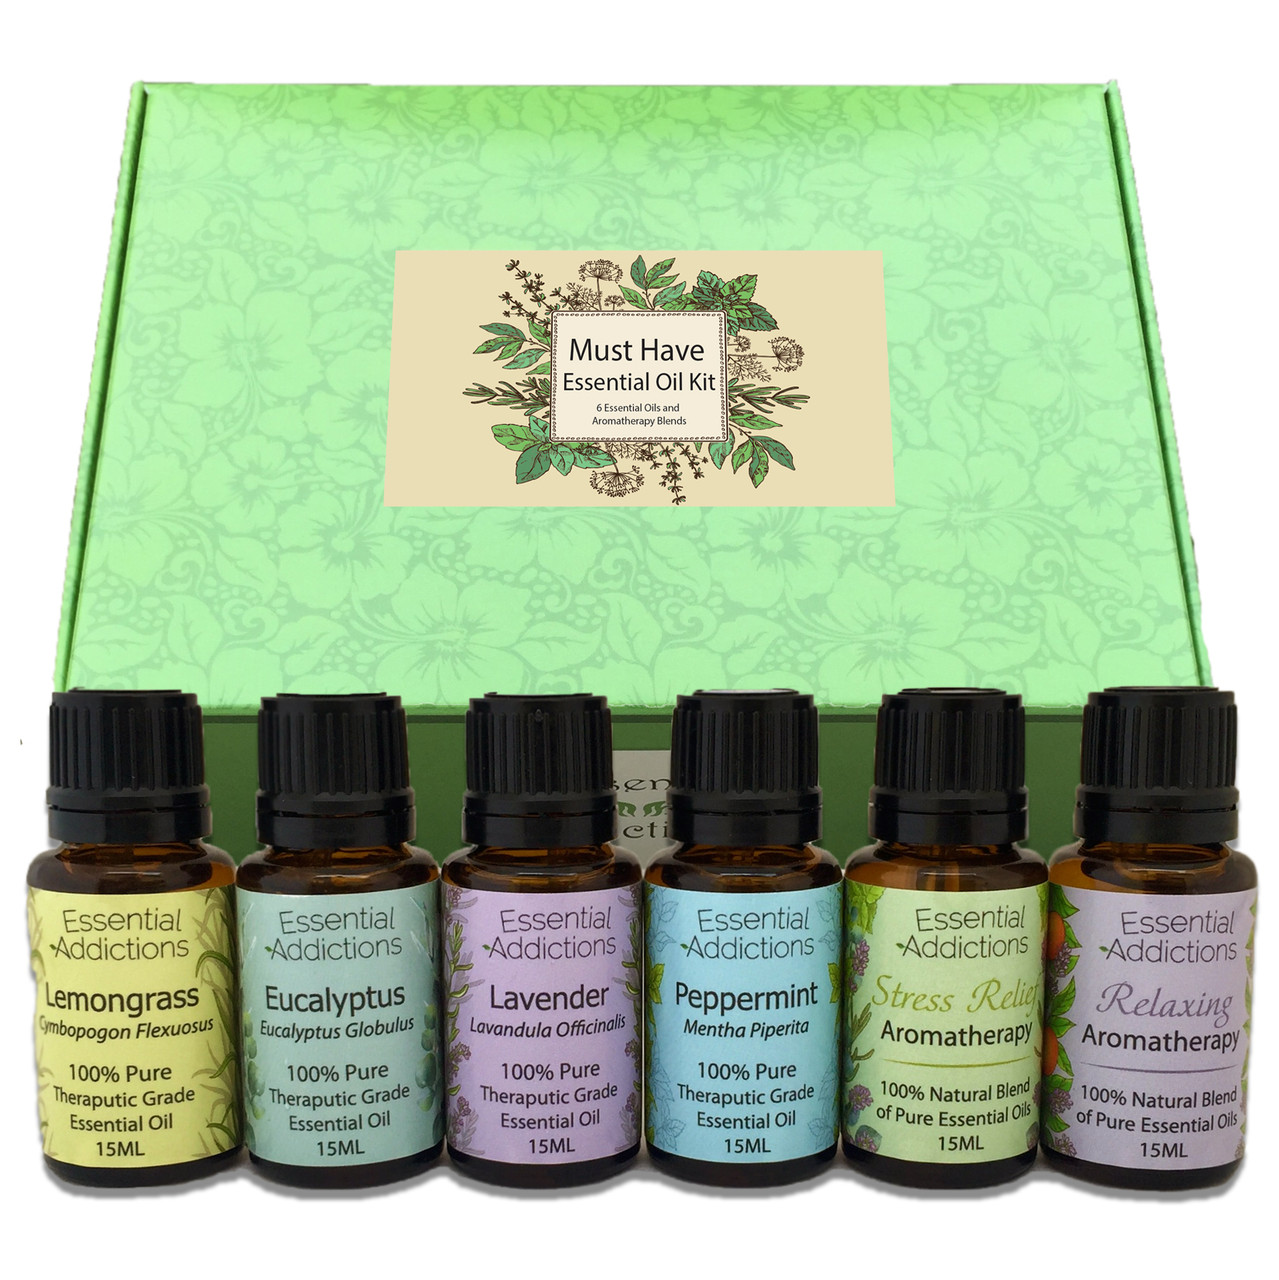 Must Have Essential Oil Kit